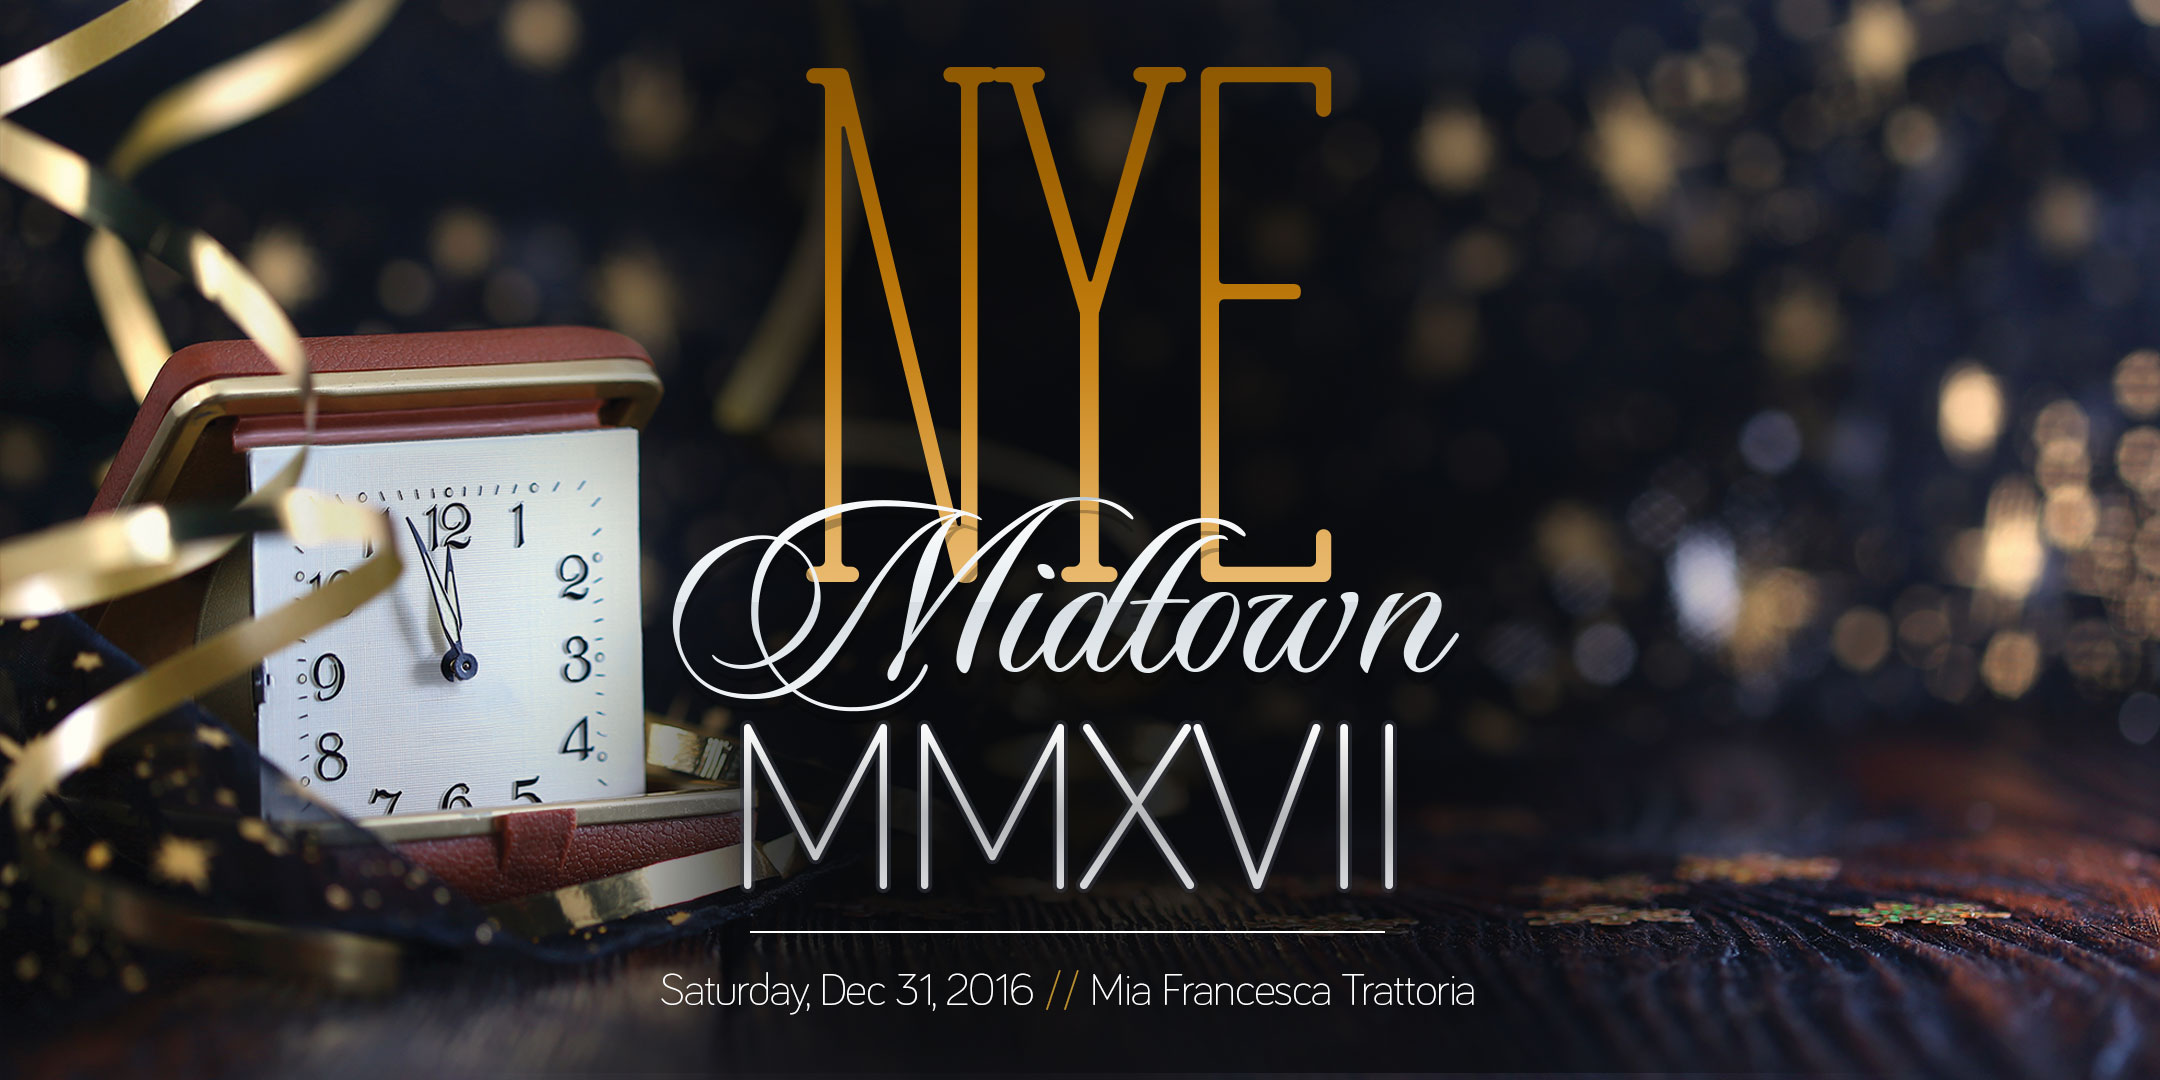 Spend New Year's Eve at Mia Francesca